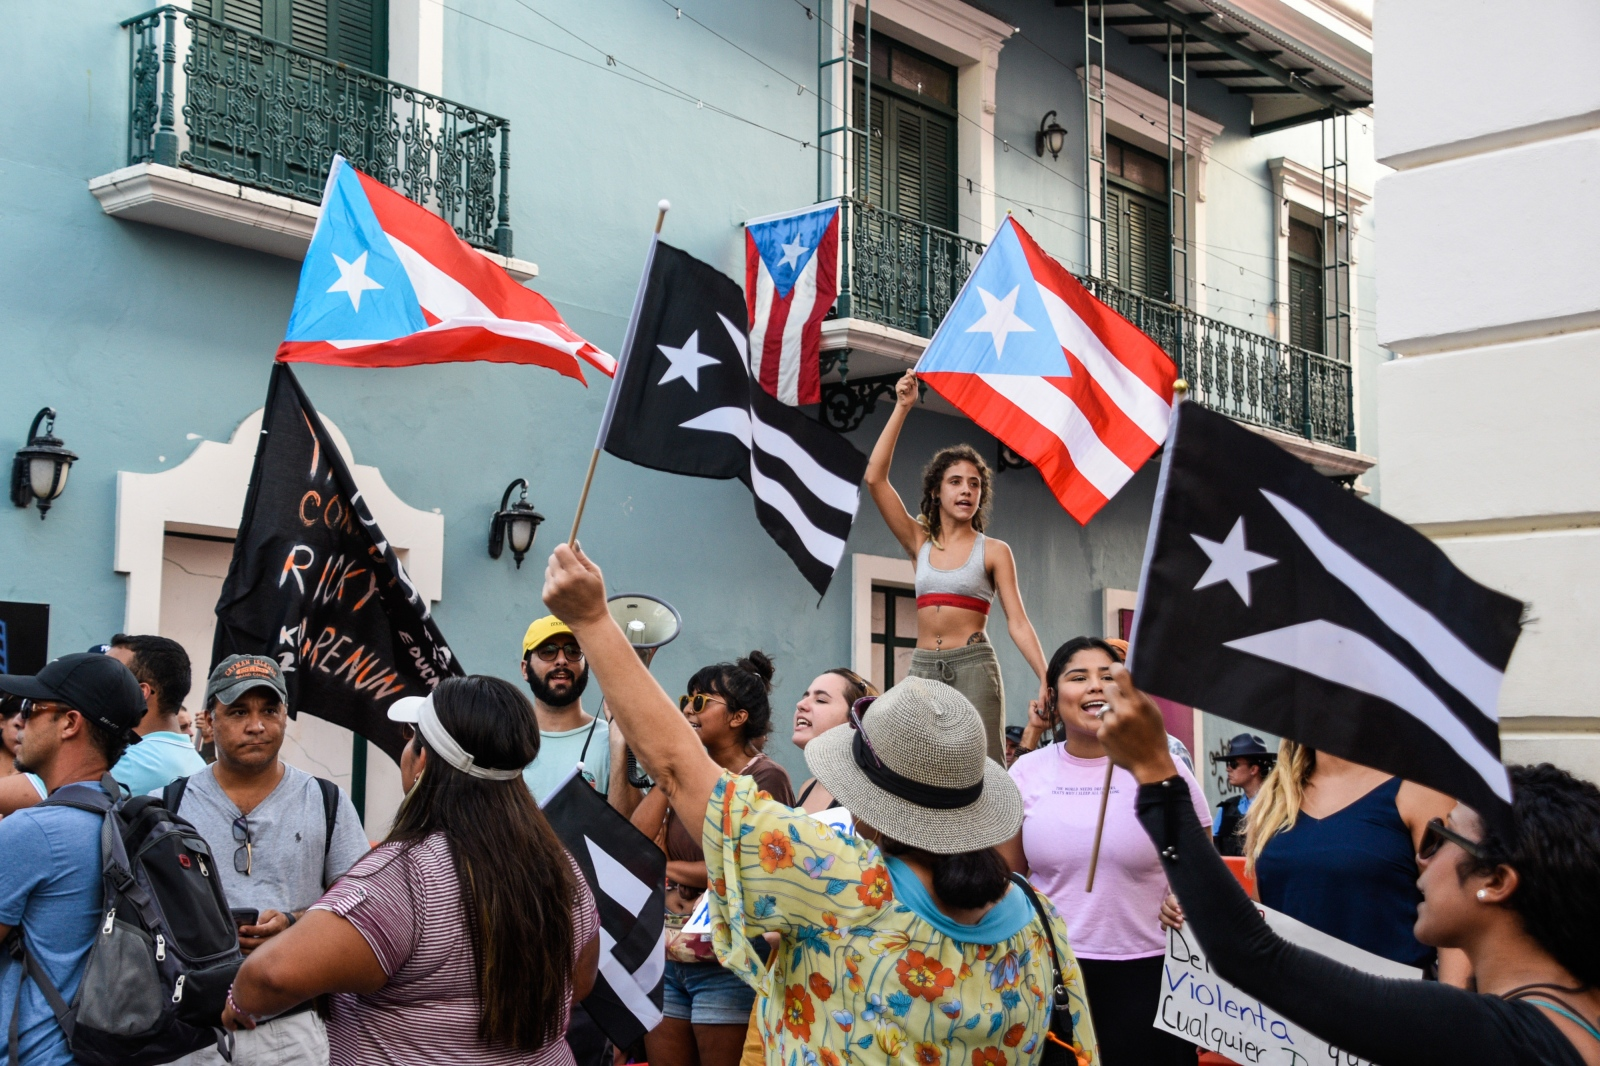 Demonstrators wave Puerto Rican flags during the protests calling for the resignation of Governor of Puerto Rico, Ricardo Rosselló. Shot while on assignment for Reuters on July 16, 2019.